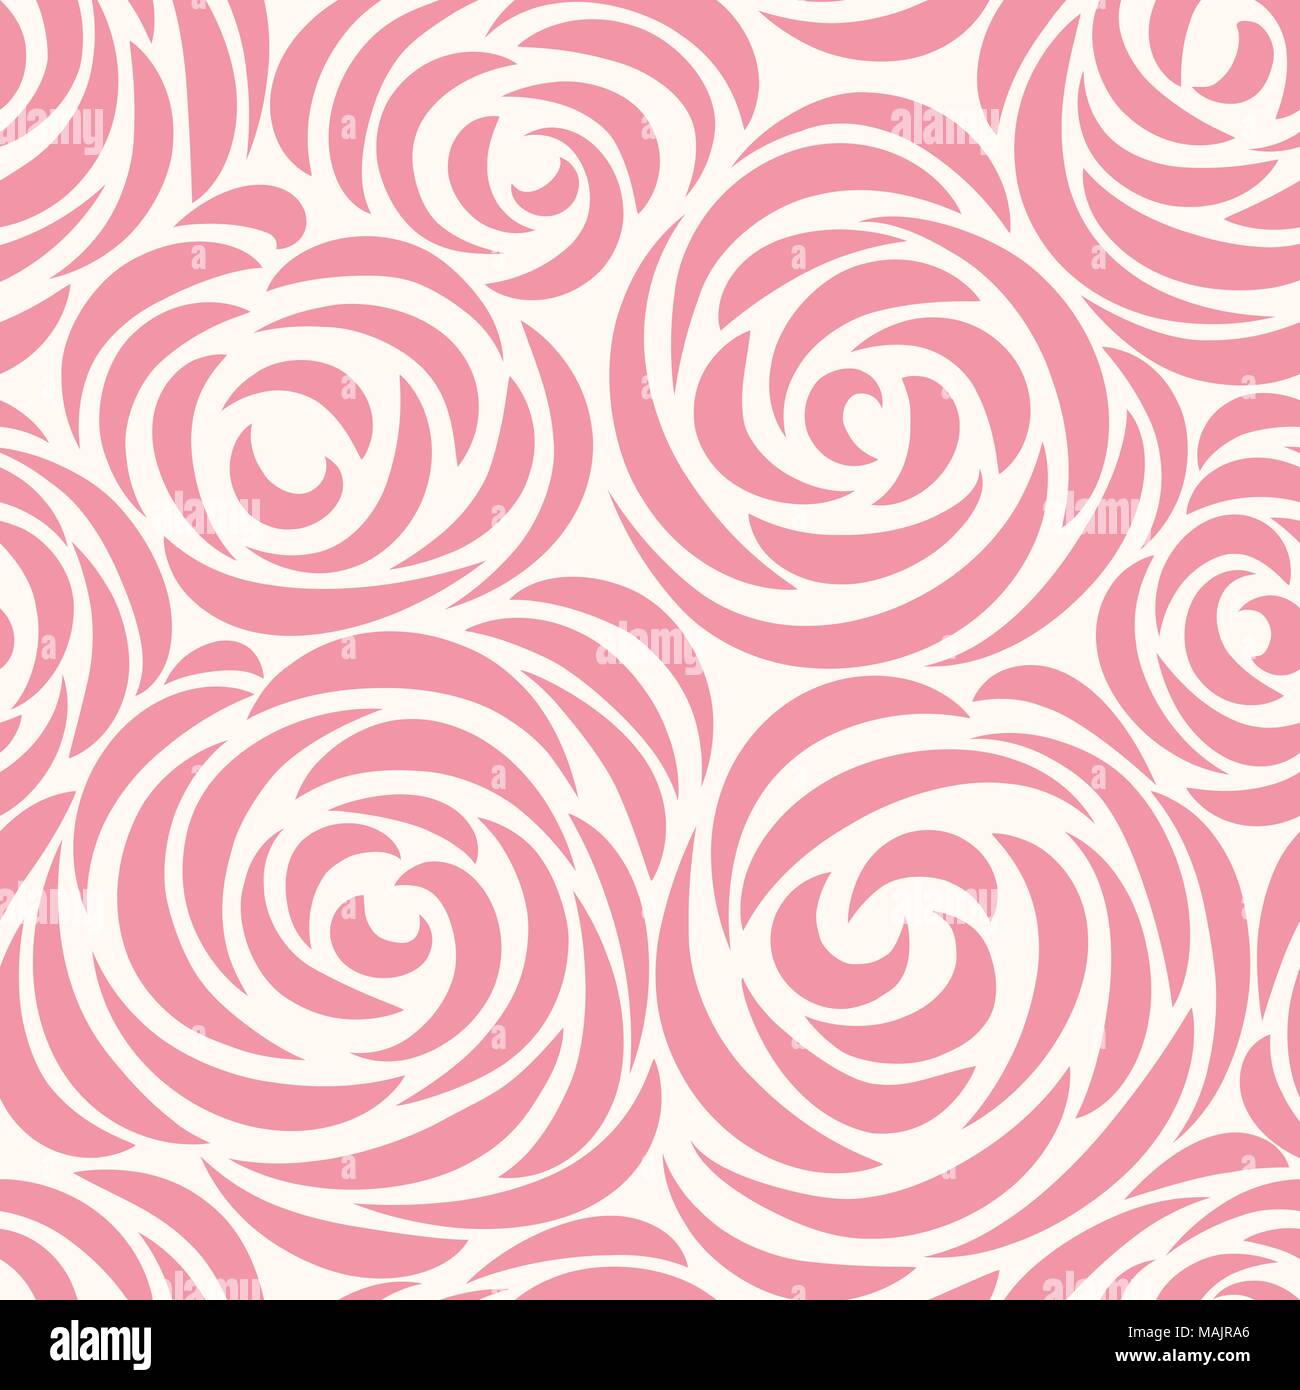 60s pattern stock photos  u0026 60s pattern stock images